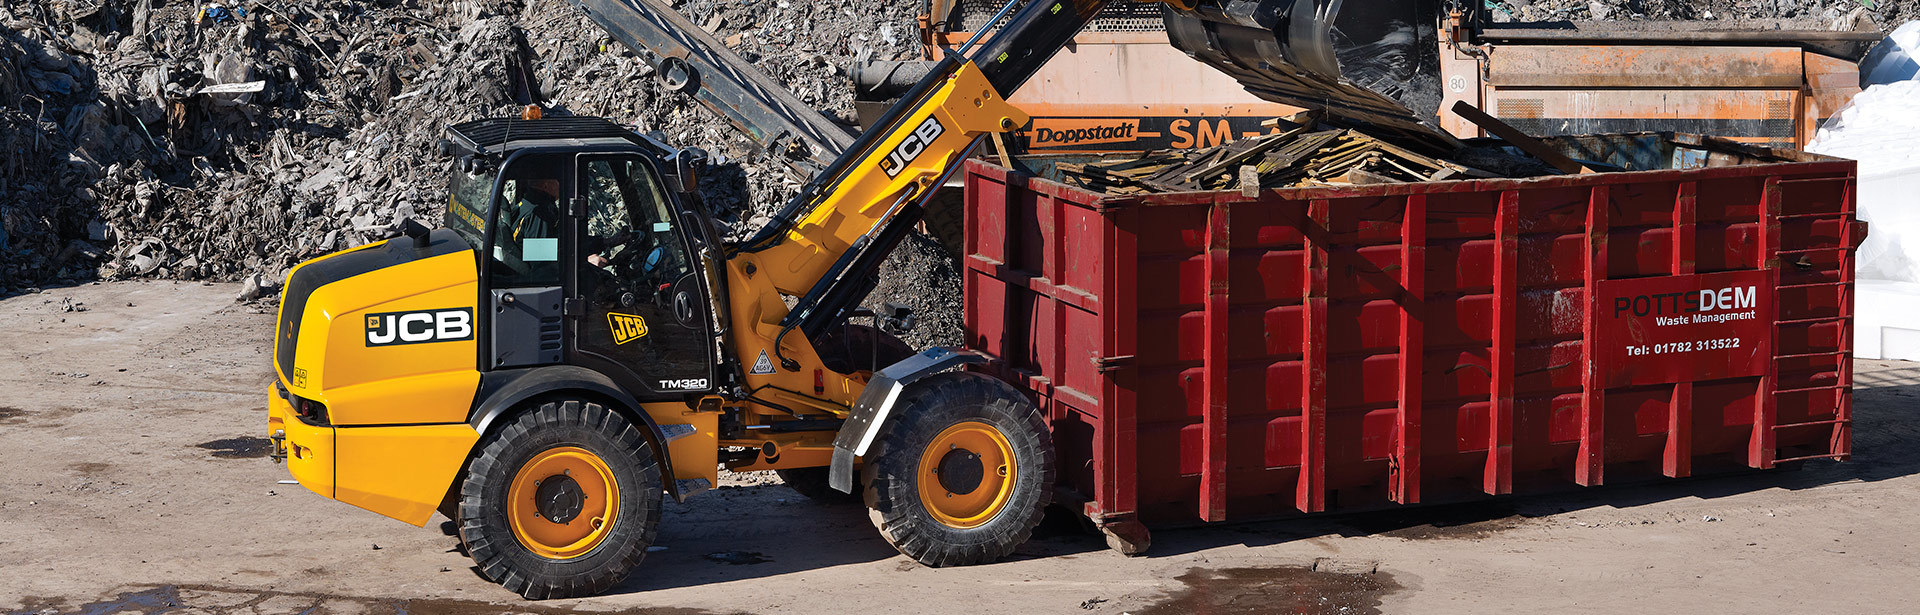 Image of a TM320 WASTEMASTER